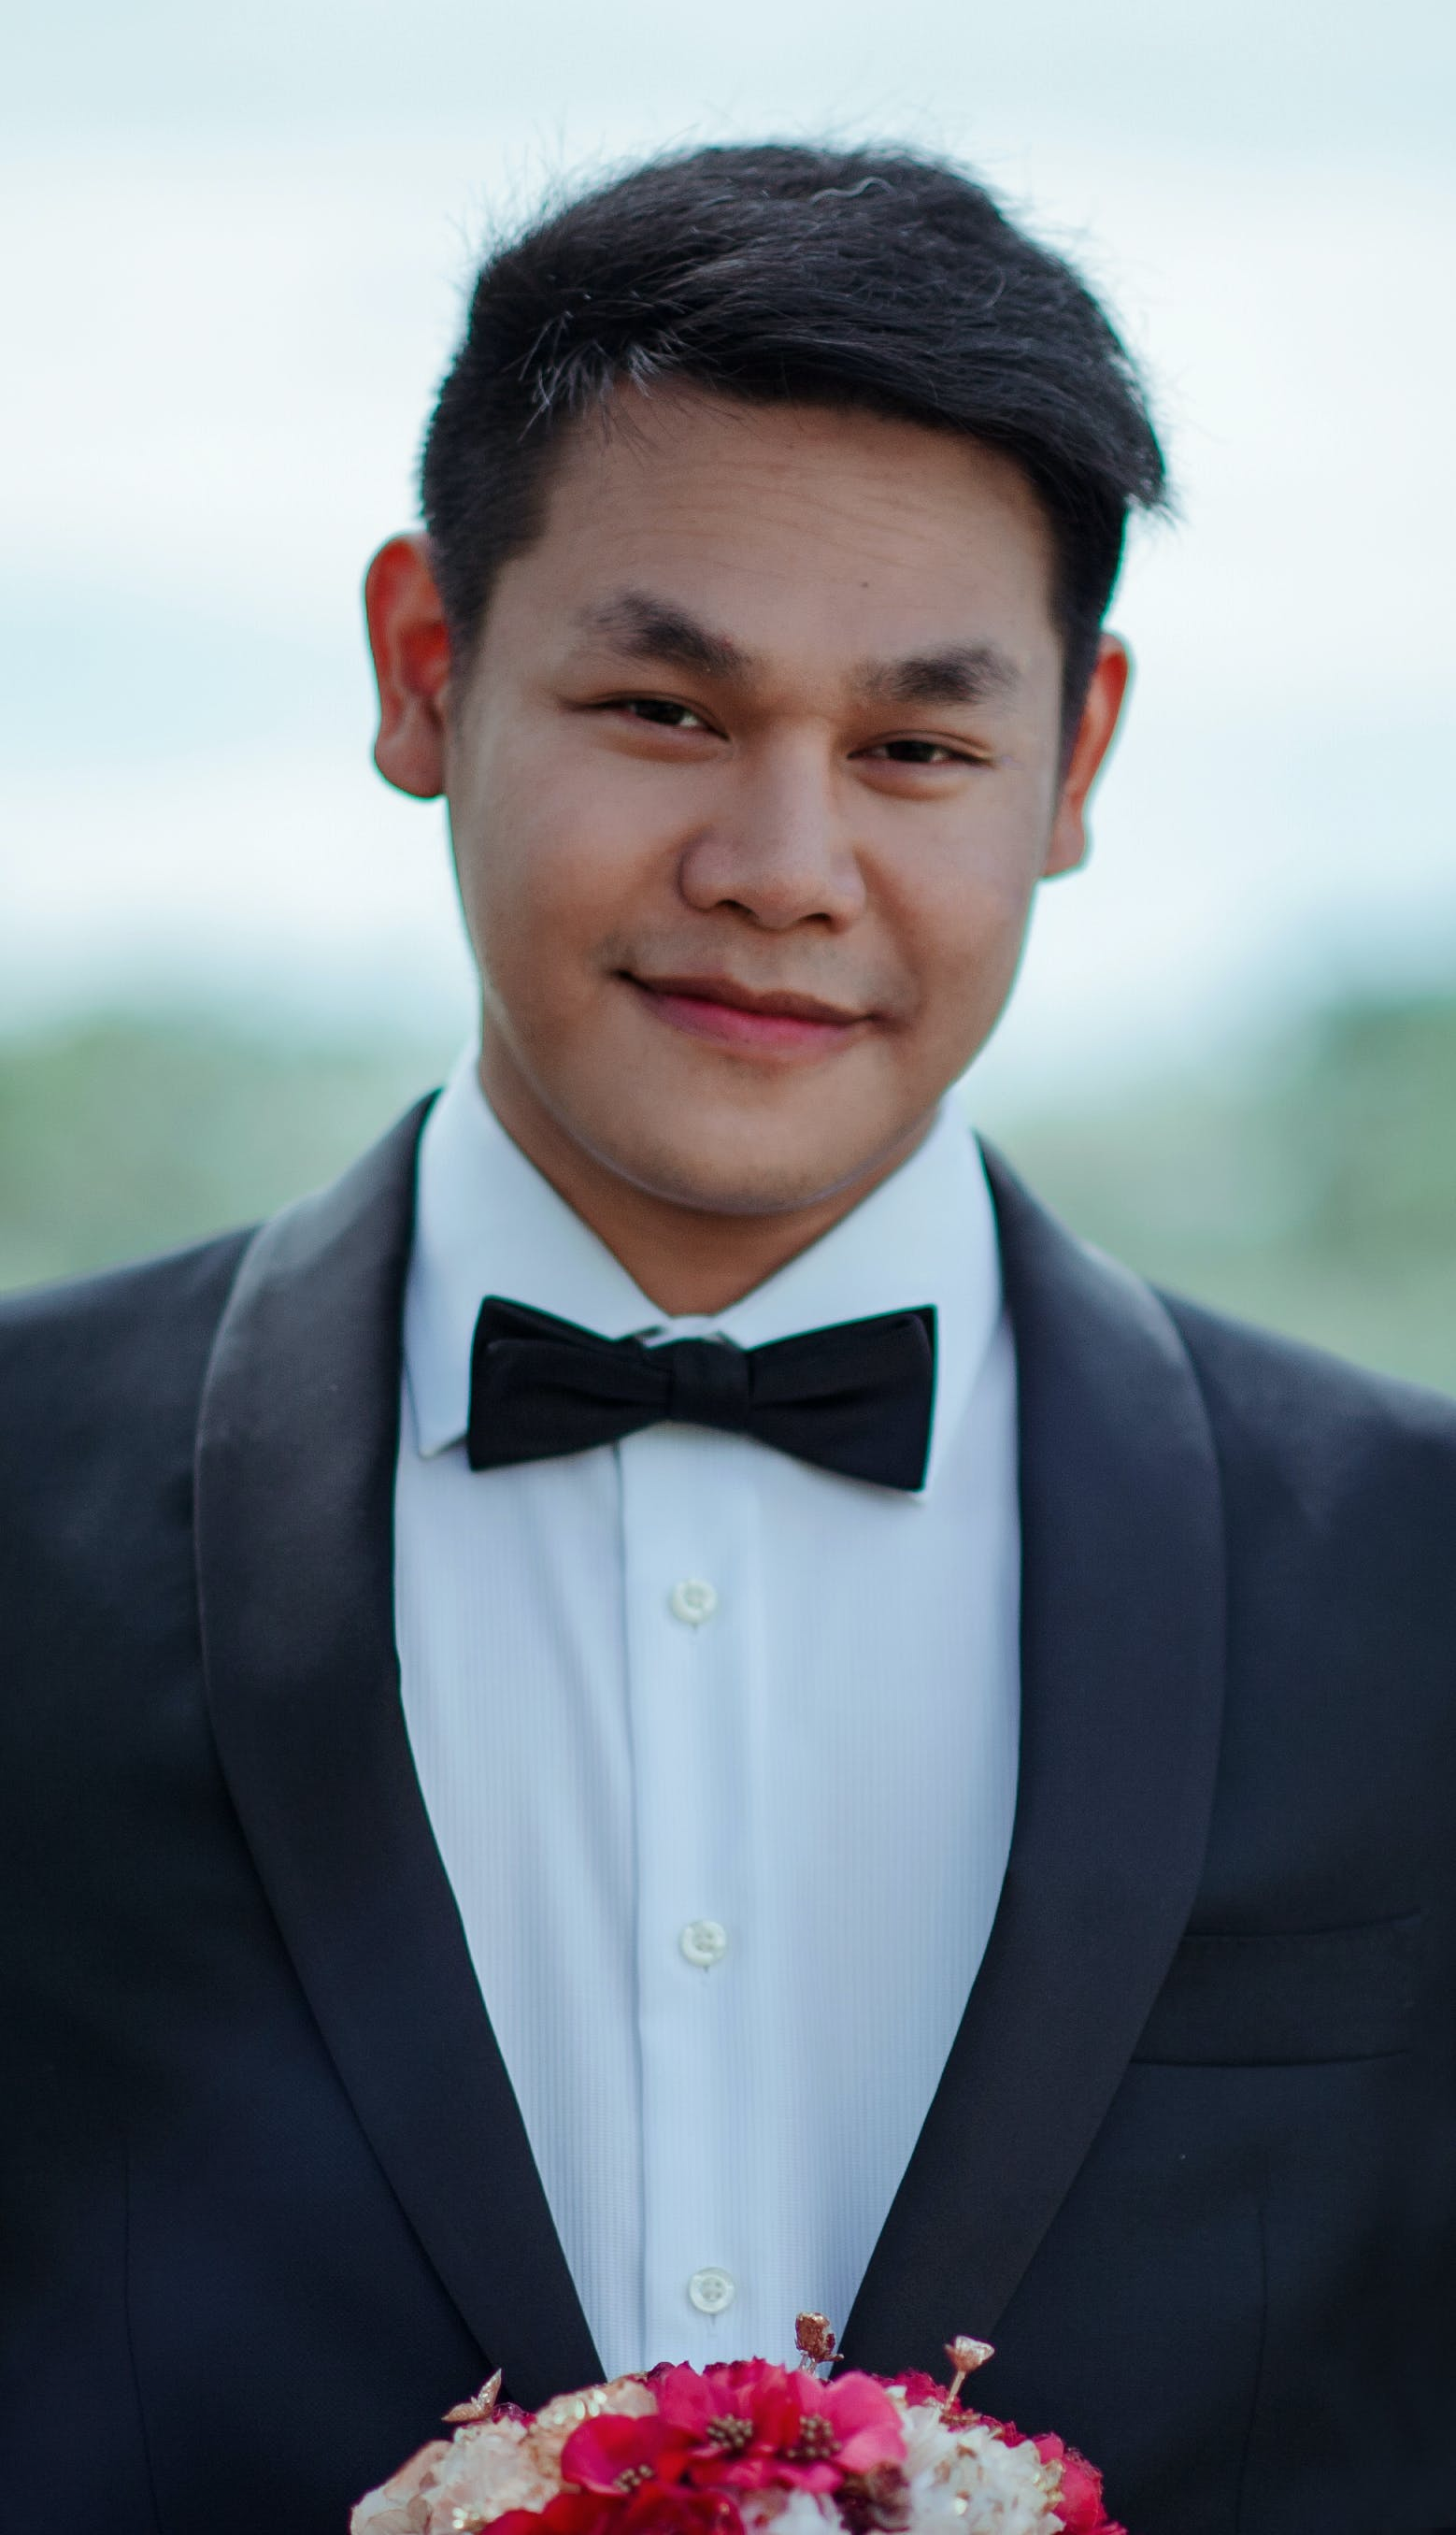 Photography of a Guy Wearing Formal Attire